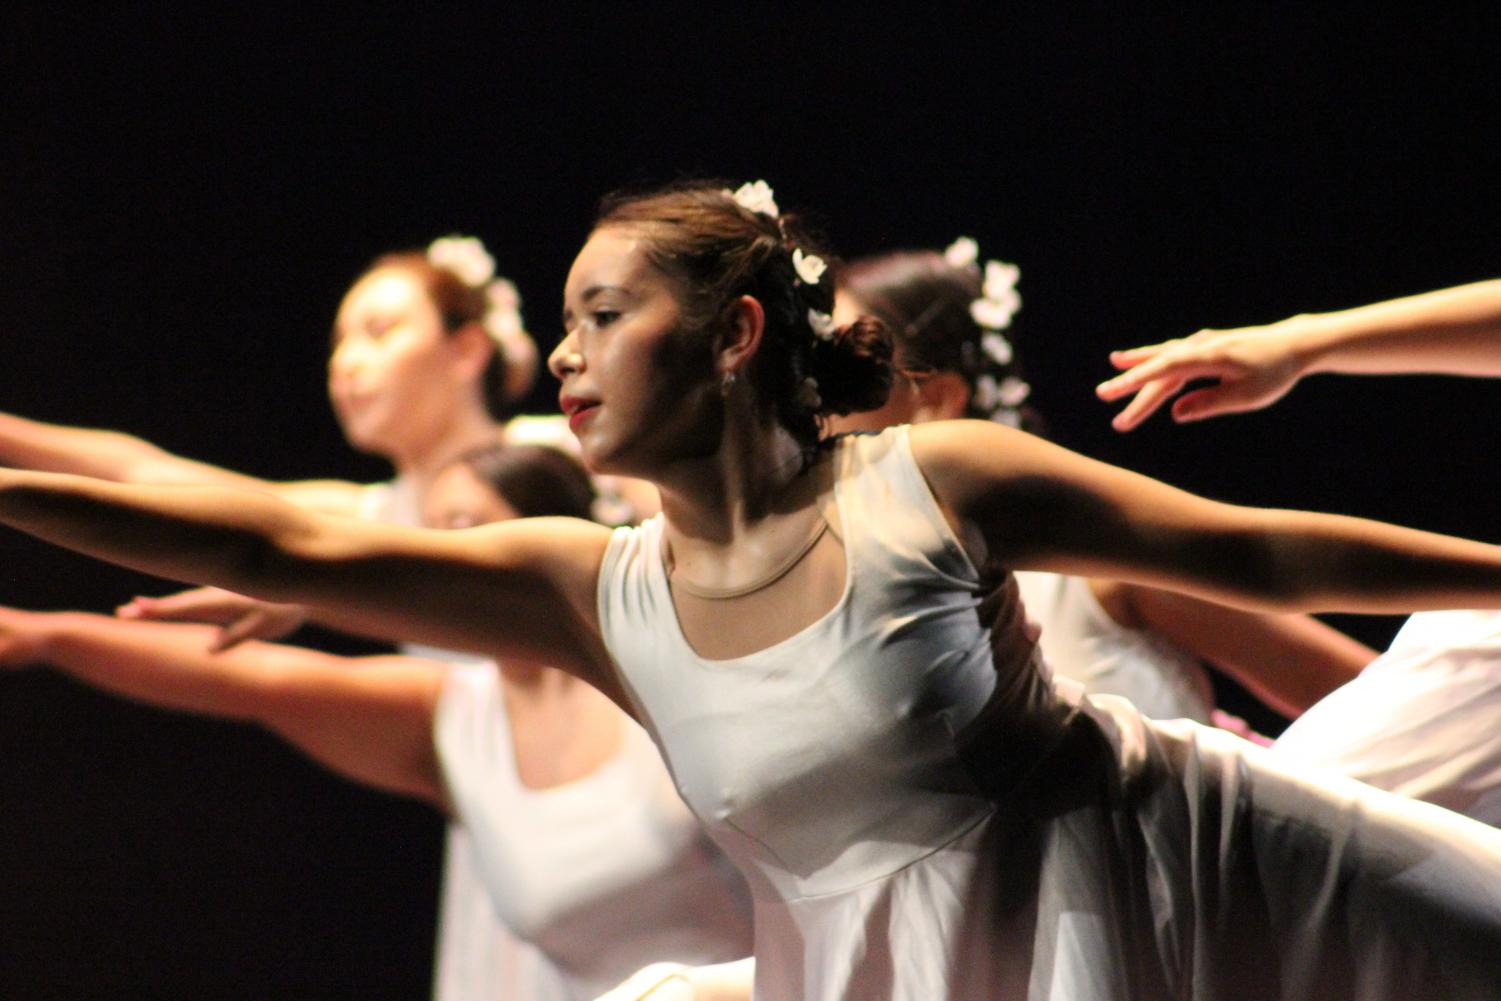 Members of the Rio Hondo Dance Program performed a number of pieces inspired by world-renowned dance professionals.